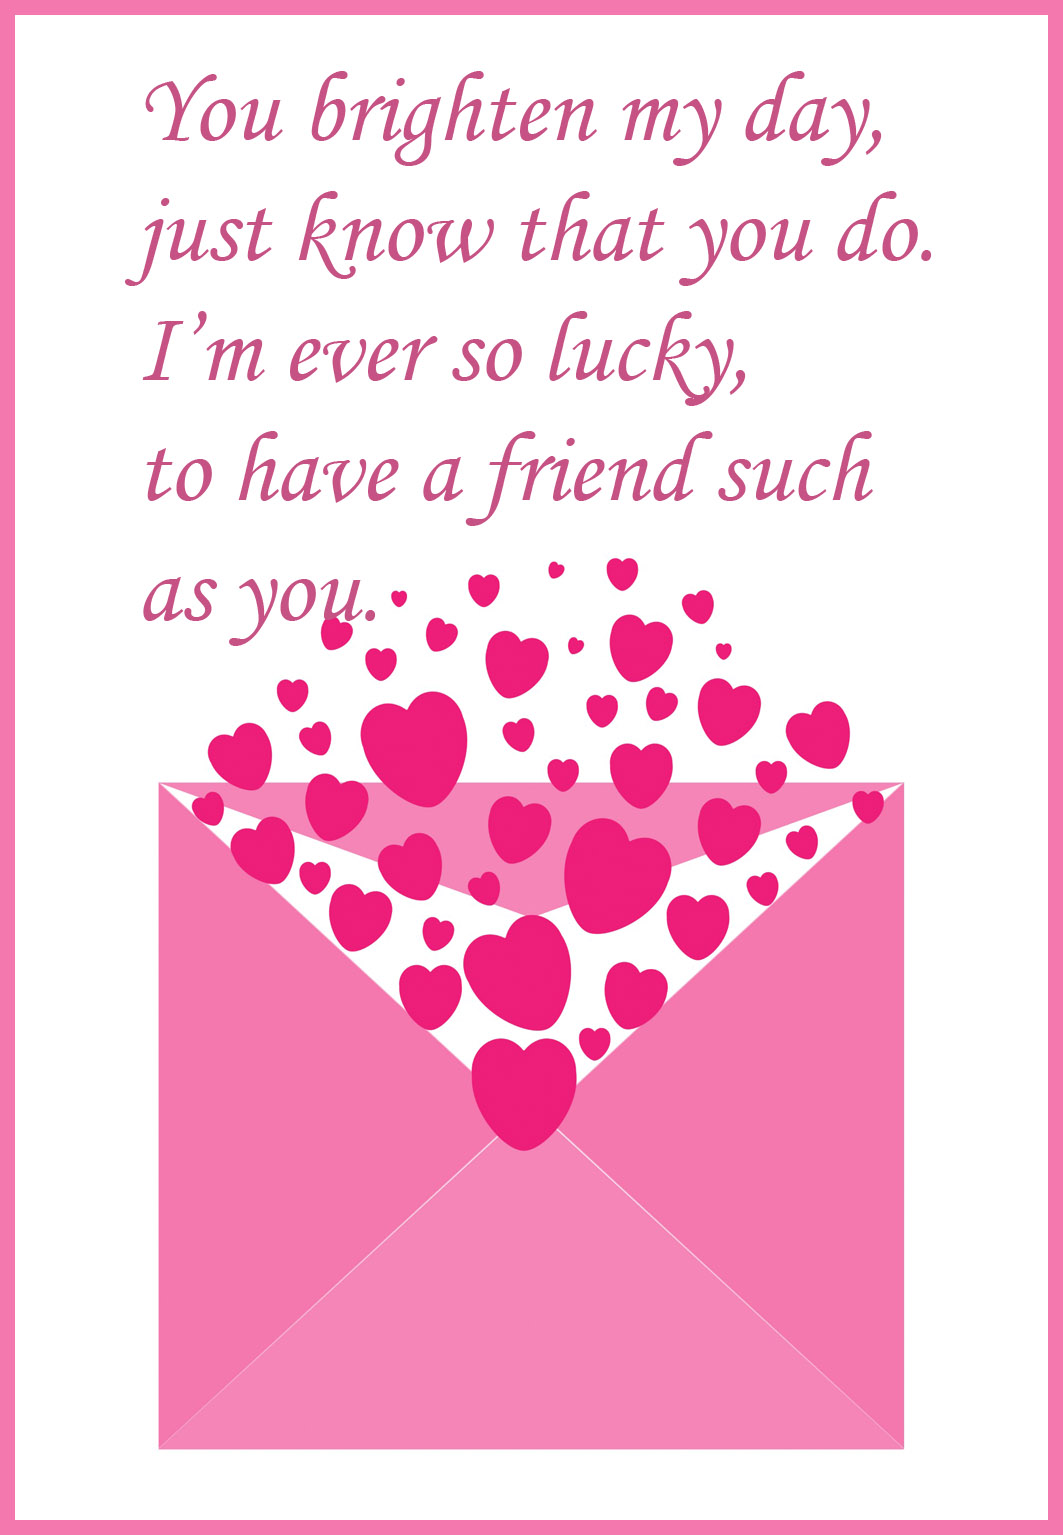 Friendship Valentines Day Cards Amy Rees Anderson S Blog